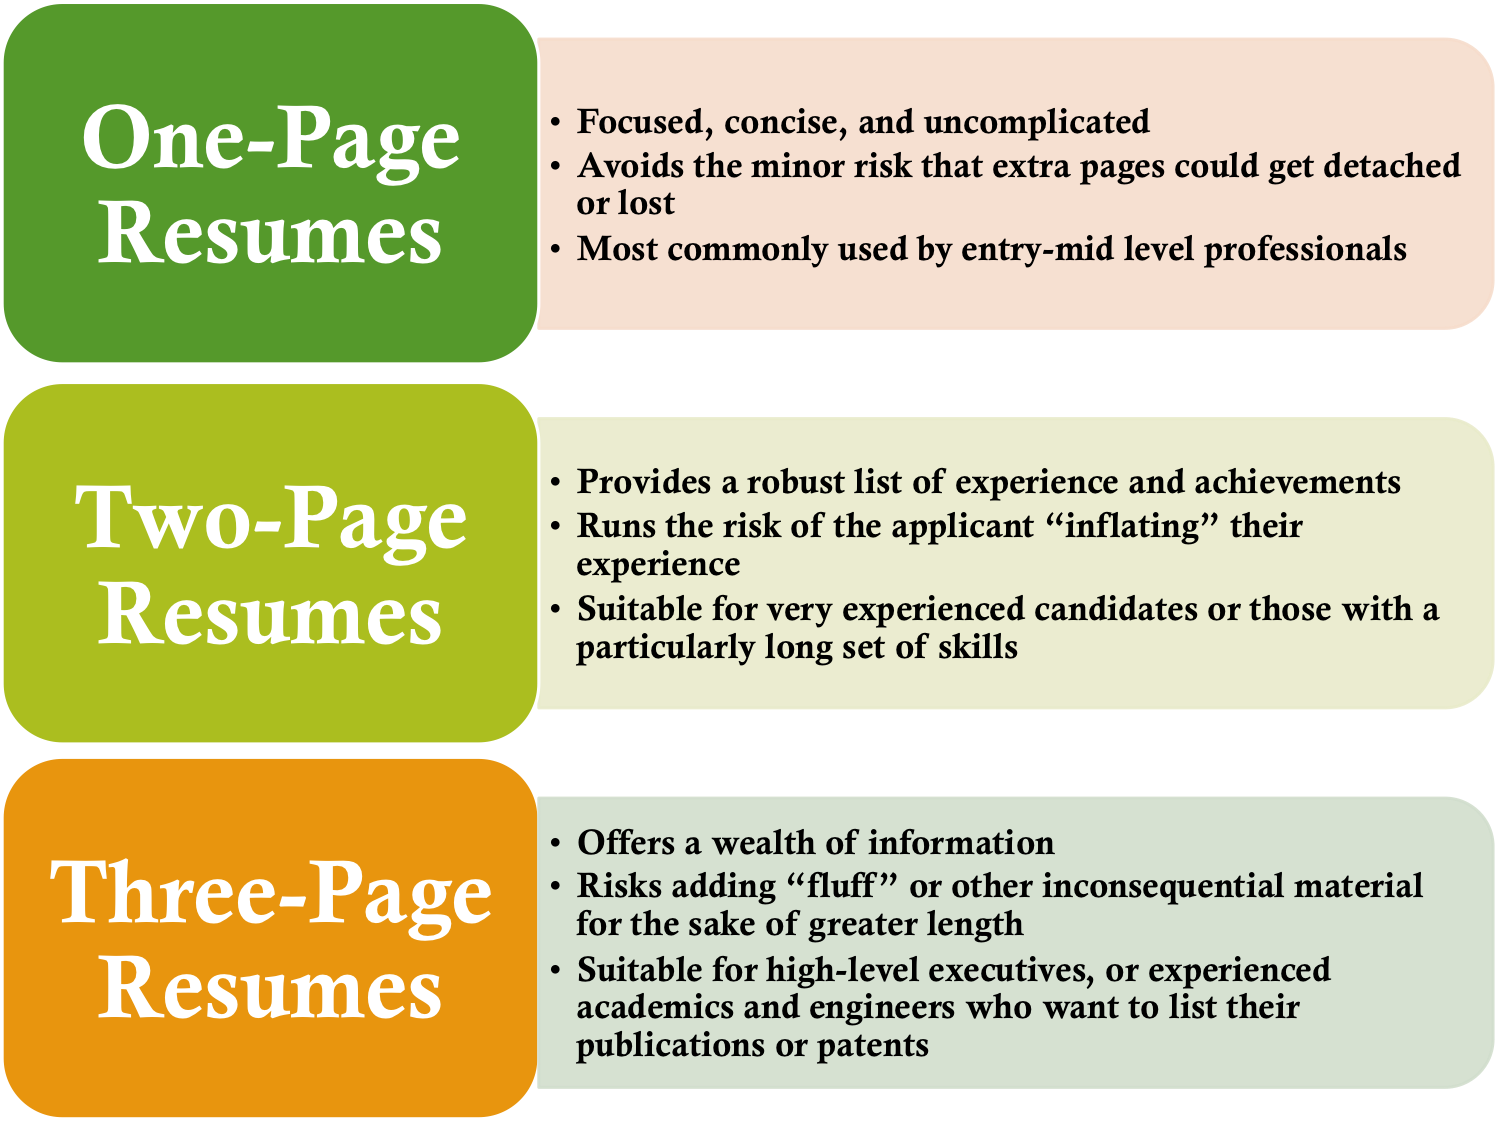 resume Resume Paper resume aesthetics font margins and paper guidelines genius ideal length